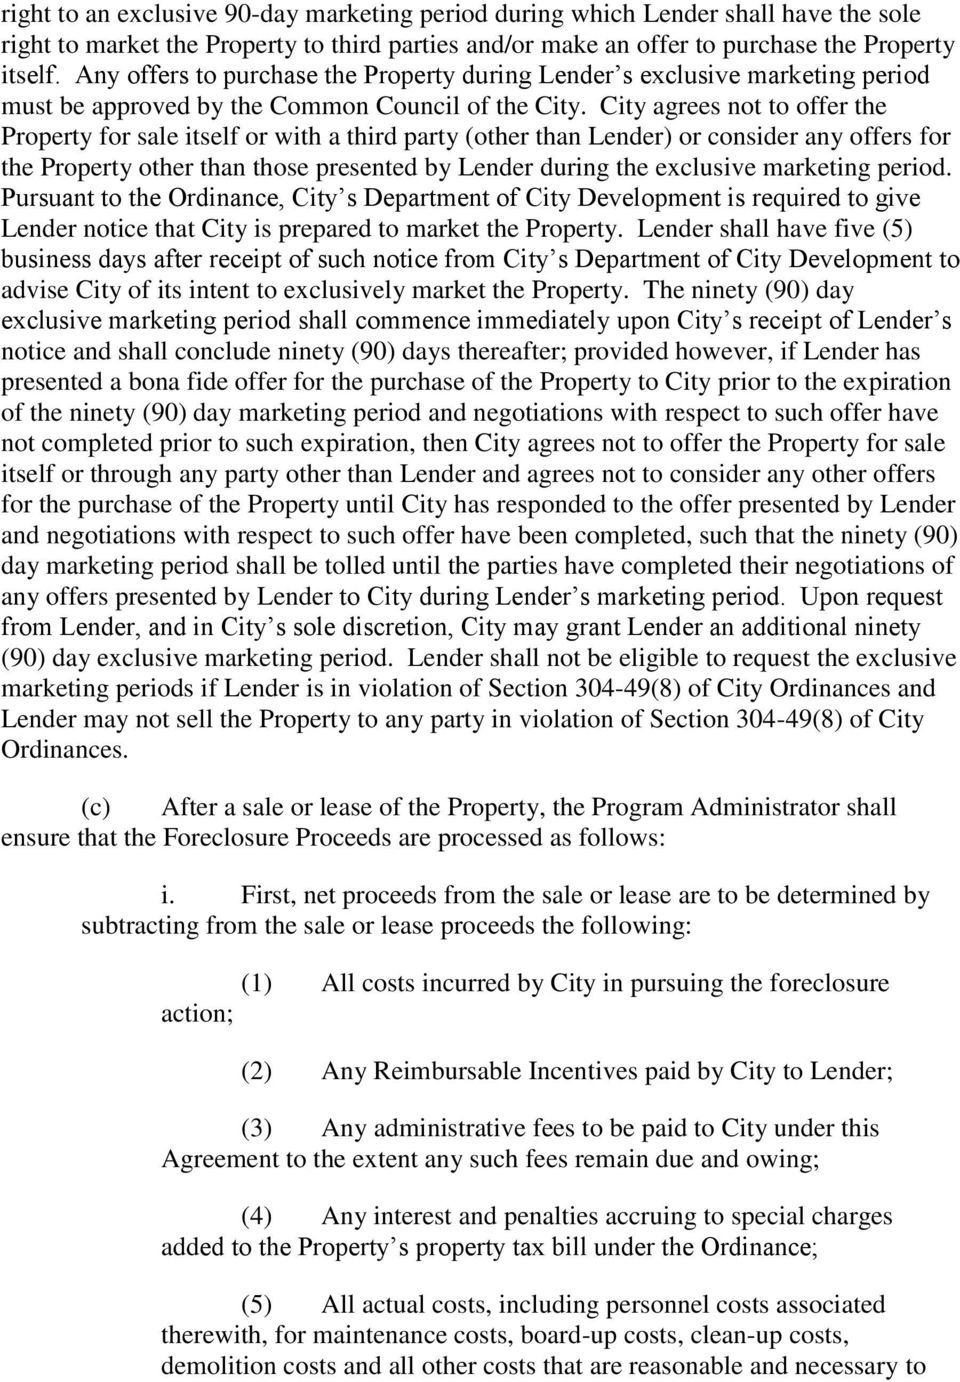 City agrees not to offer the Property for sale itself or with a third party (other than Lender) or consider any offers for the Property other than those presented by Lender during the exclusive